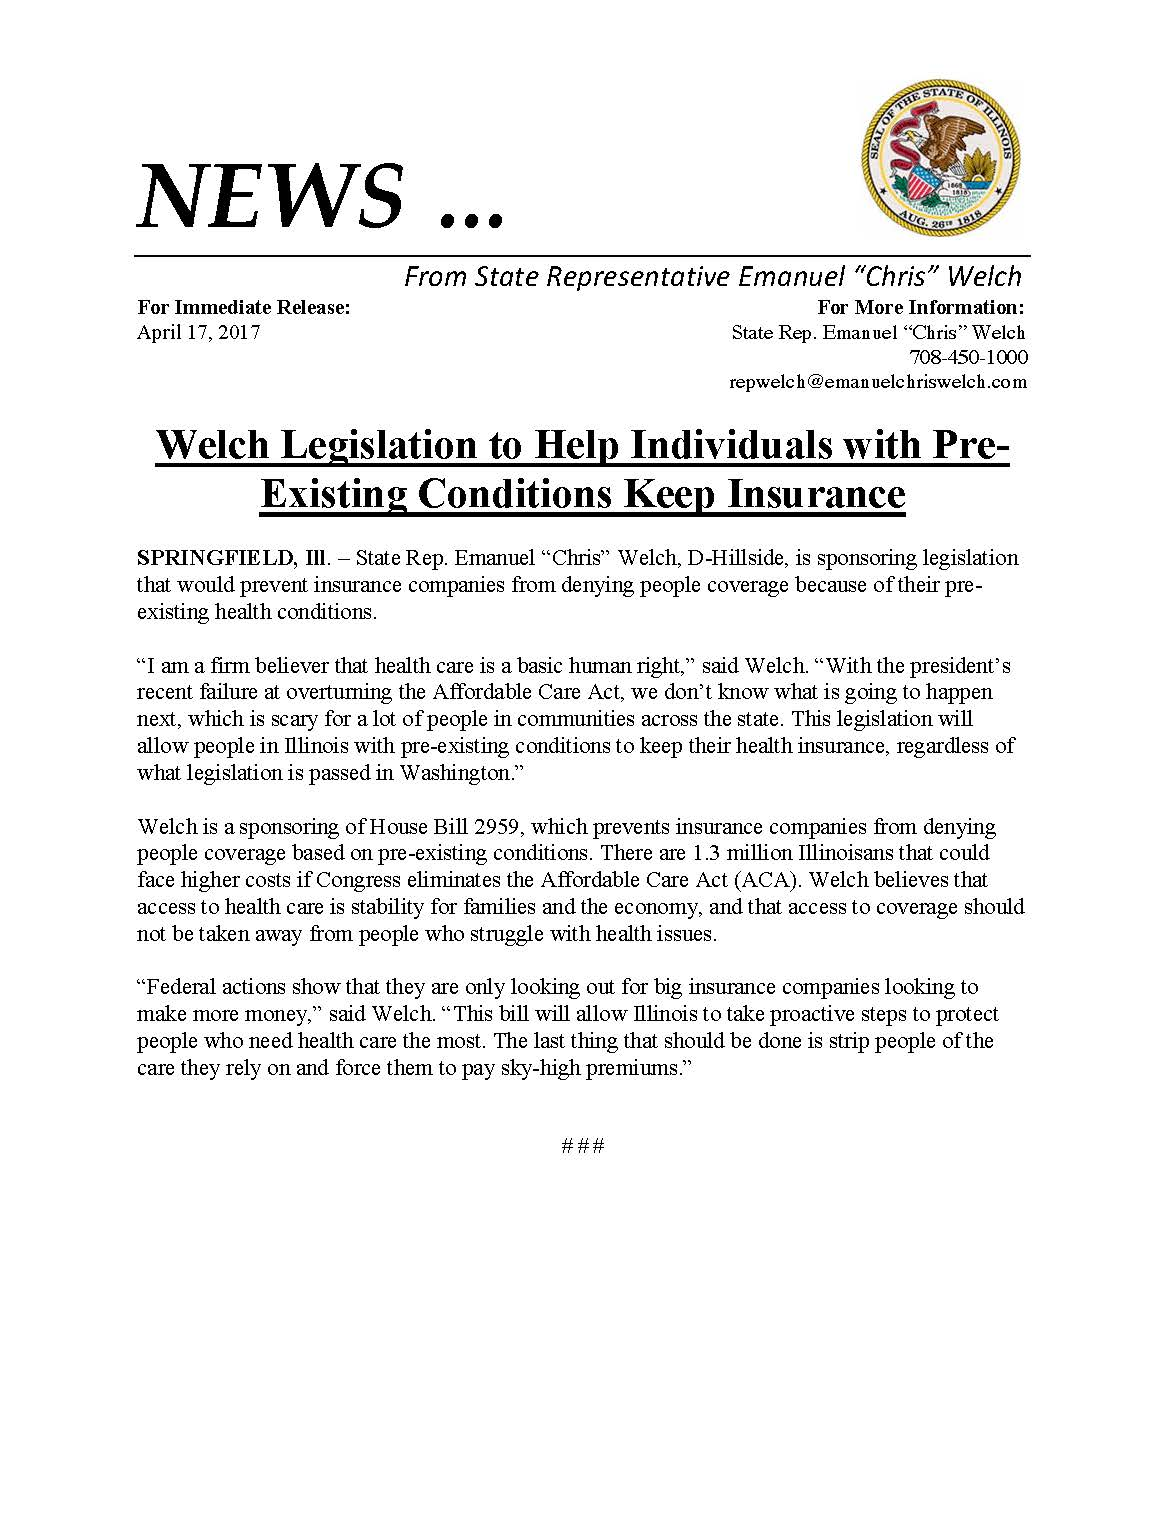 Welch Legislation to Help Individuals with Pre-Existing Conditions Keep Insurance  (April 17, 2017)